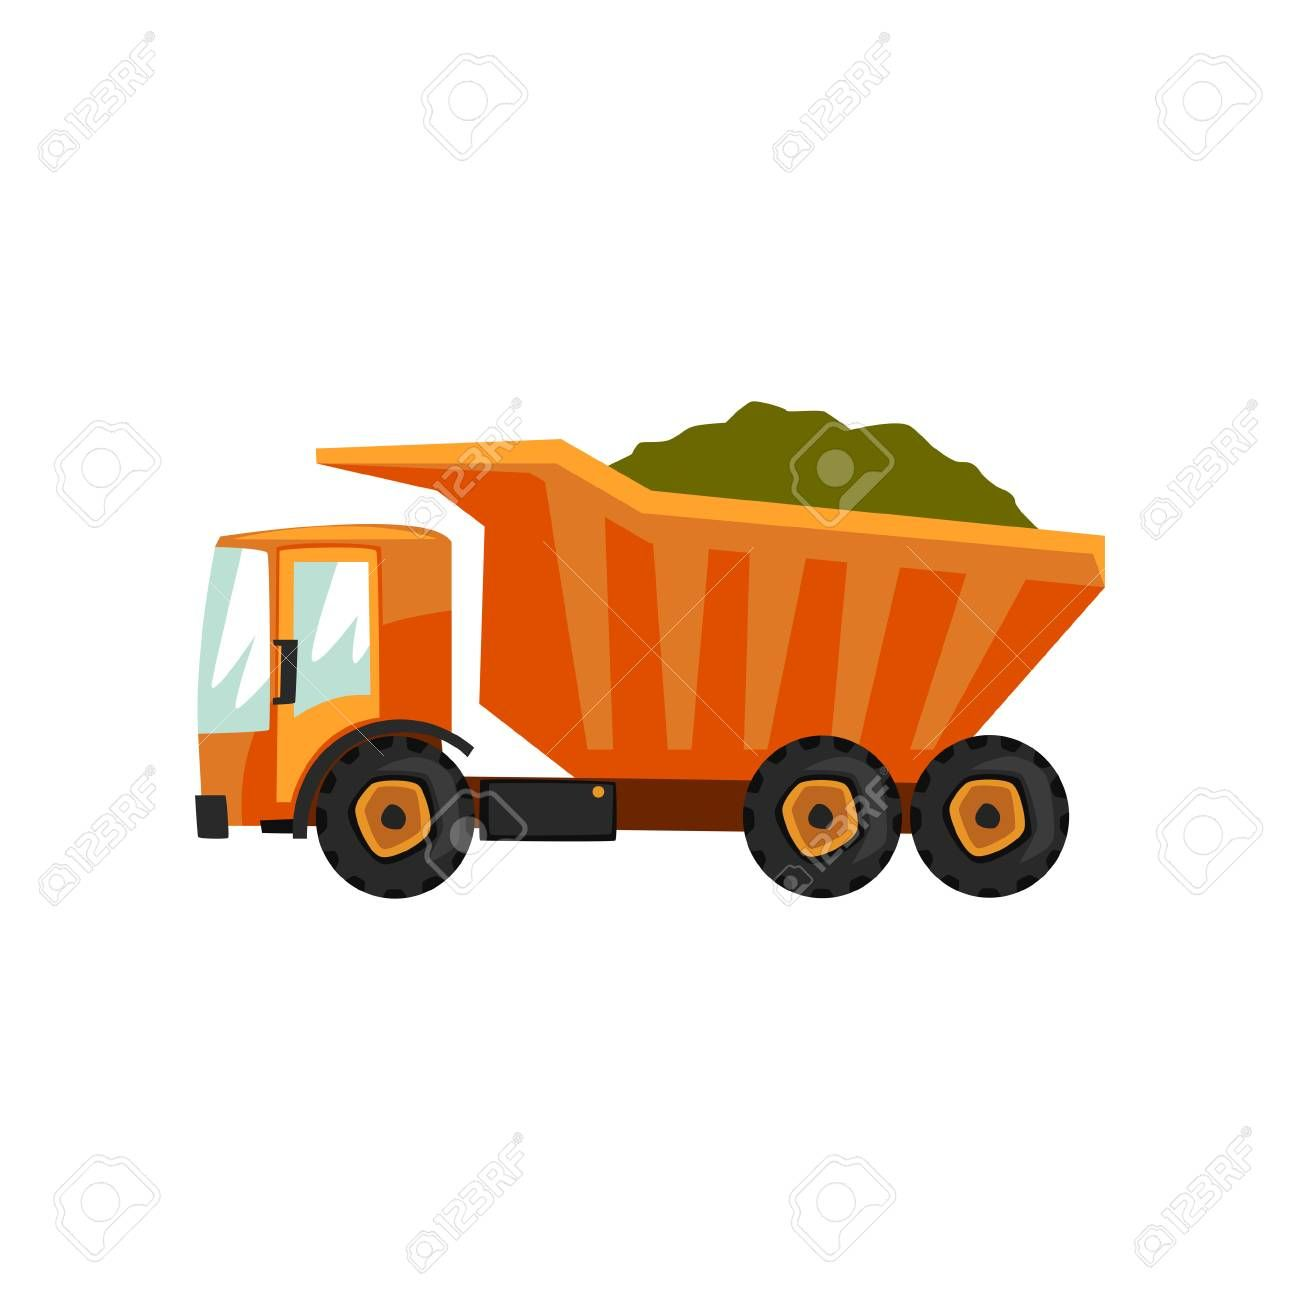 Agricultural Delivery Truck Transportation Of Grain Vector